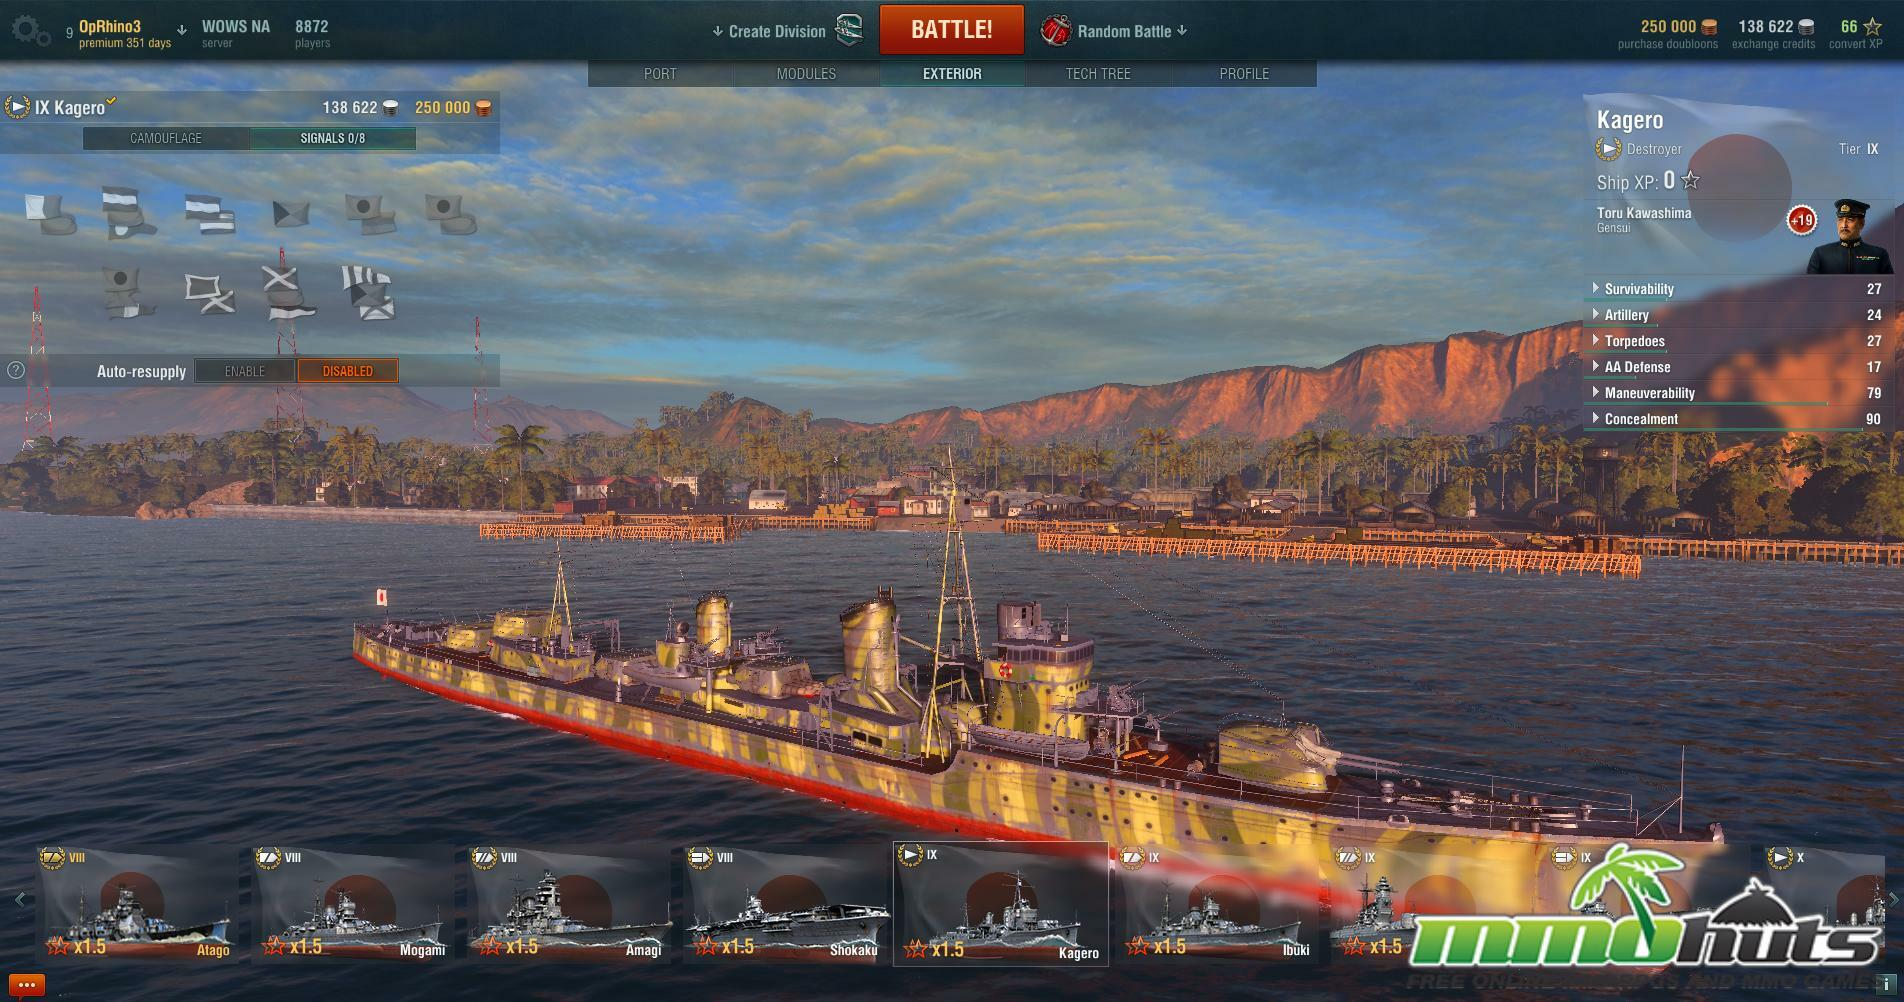 worldofwarships 2015-10-01 16-19-50-14